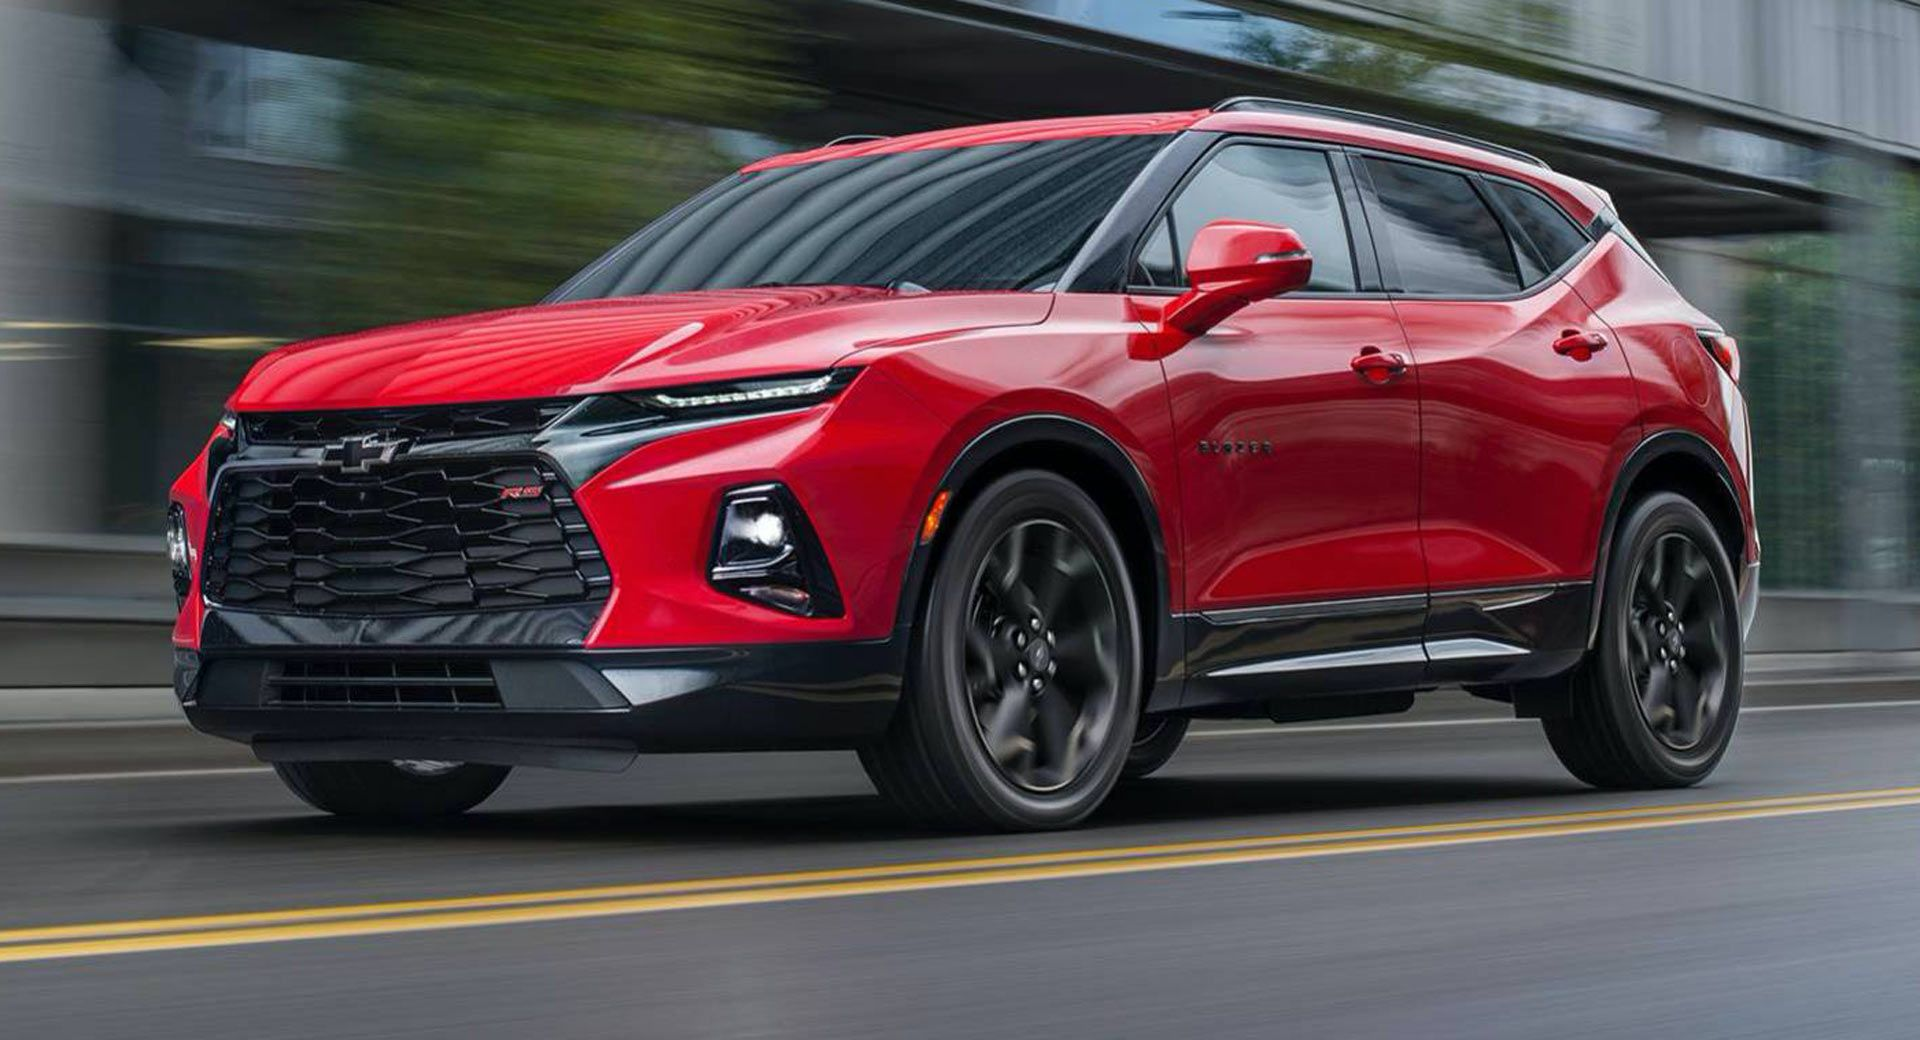 Lingenfelter To Supercharge New Chevrolet Blazer S V6 Chevrolet Chevroletblazer Lingenfelter Suv Tuning Cars Ca Chevrolet Blazer Chevrolet Chevy Dealers